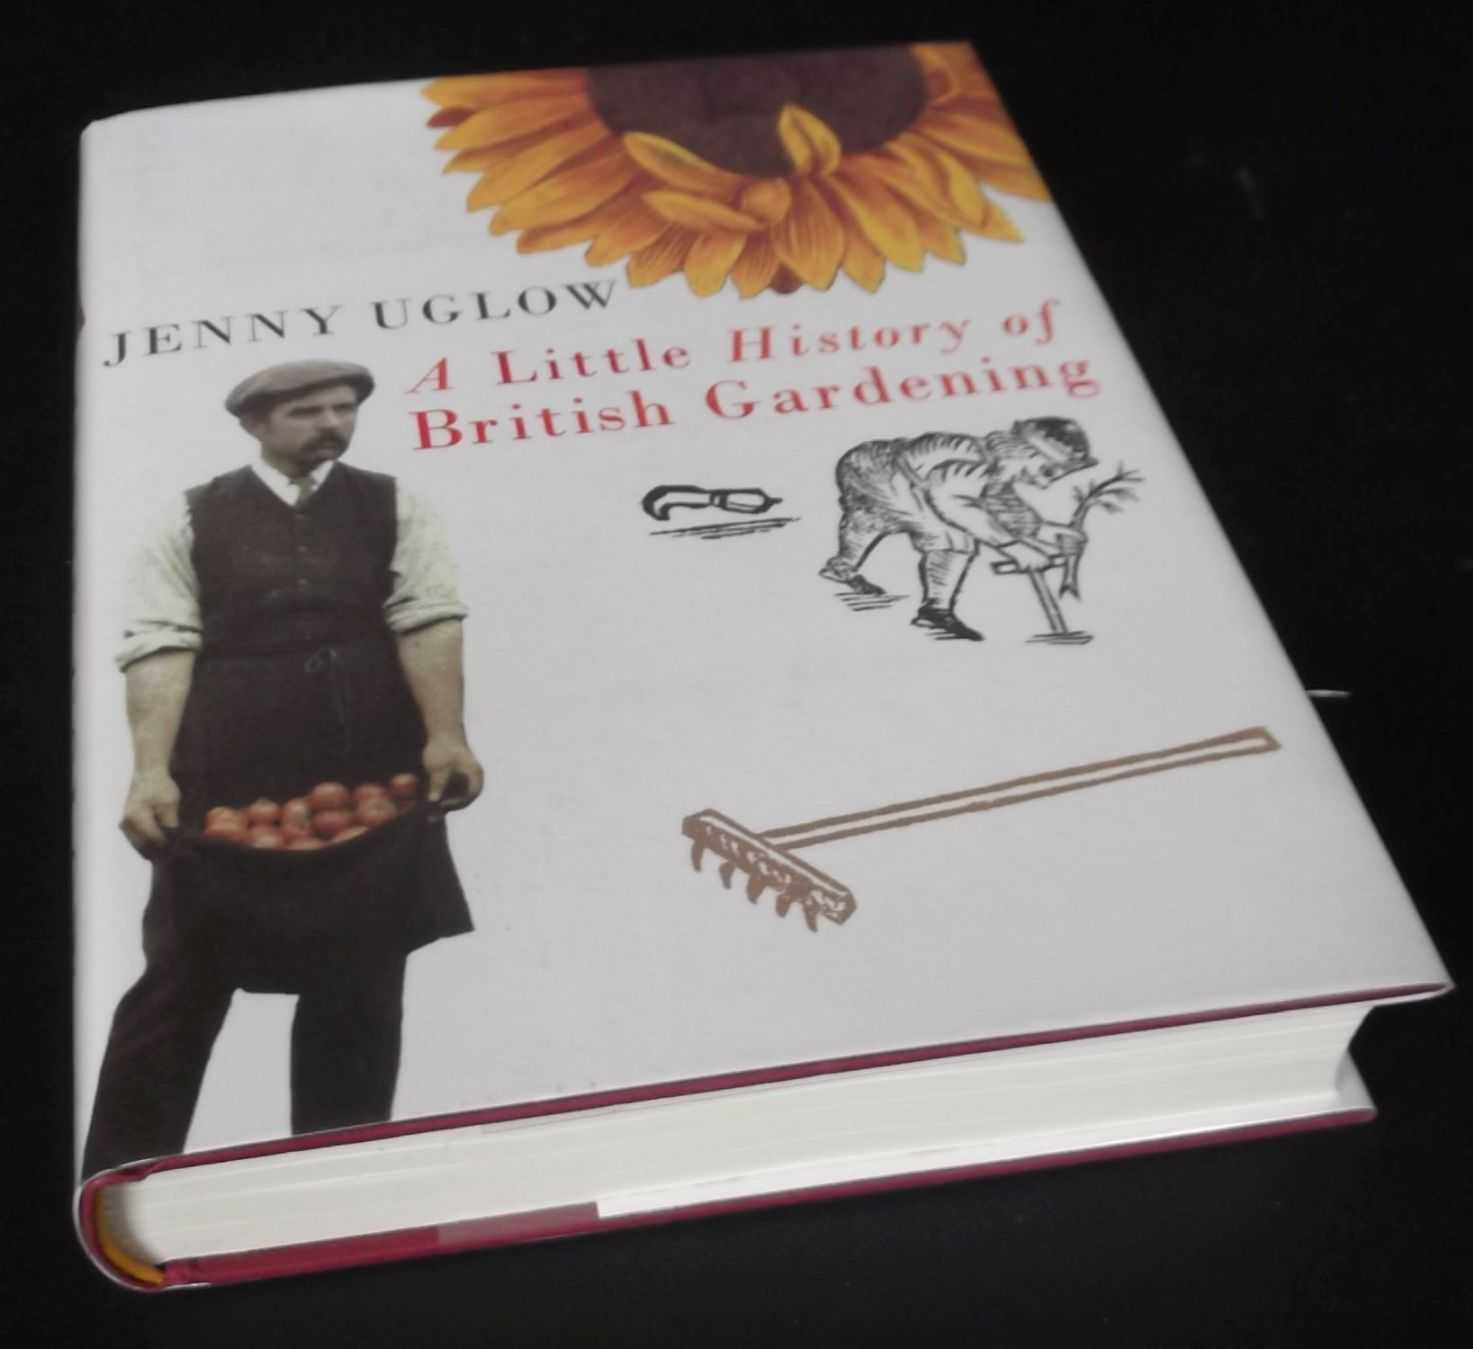 JENNY UGLOW - A Little History of British Gardening